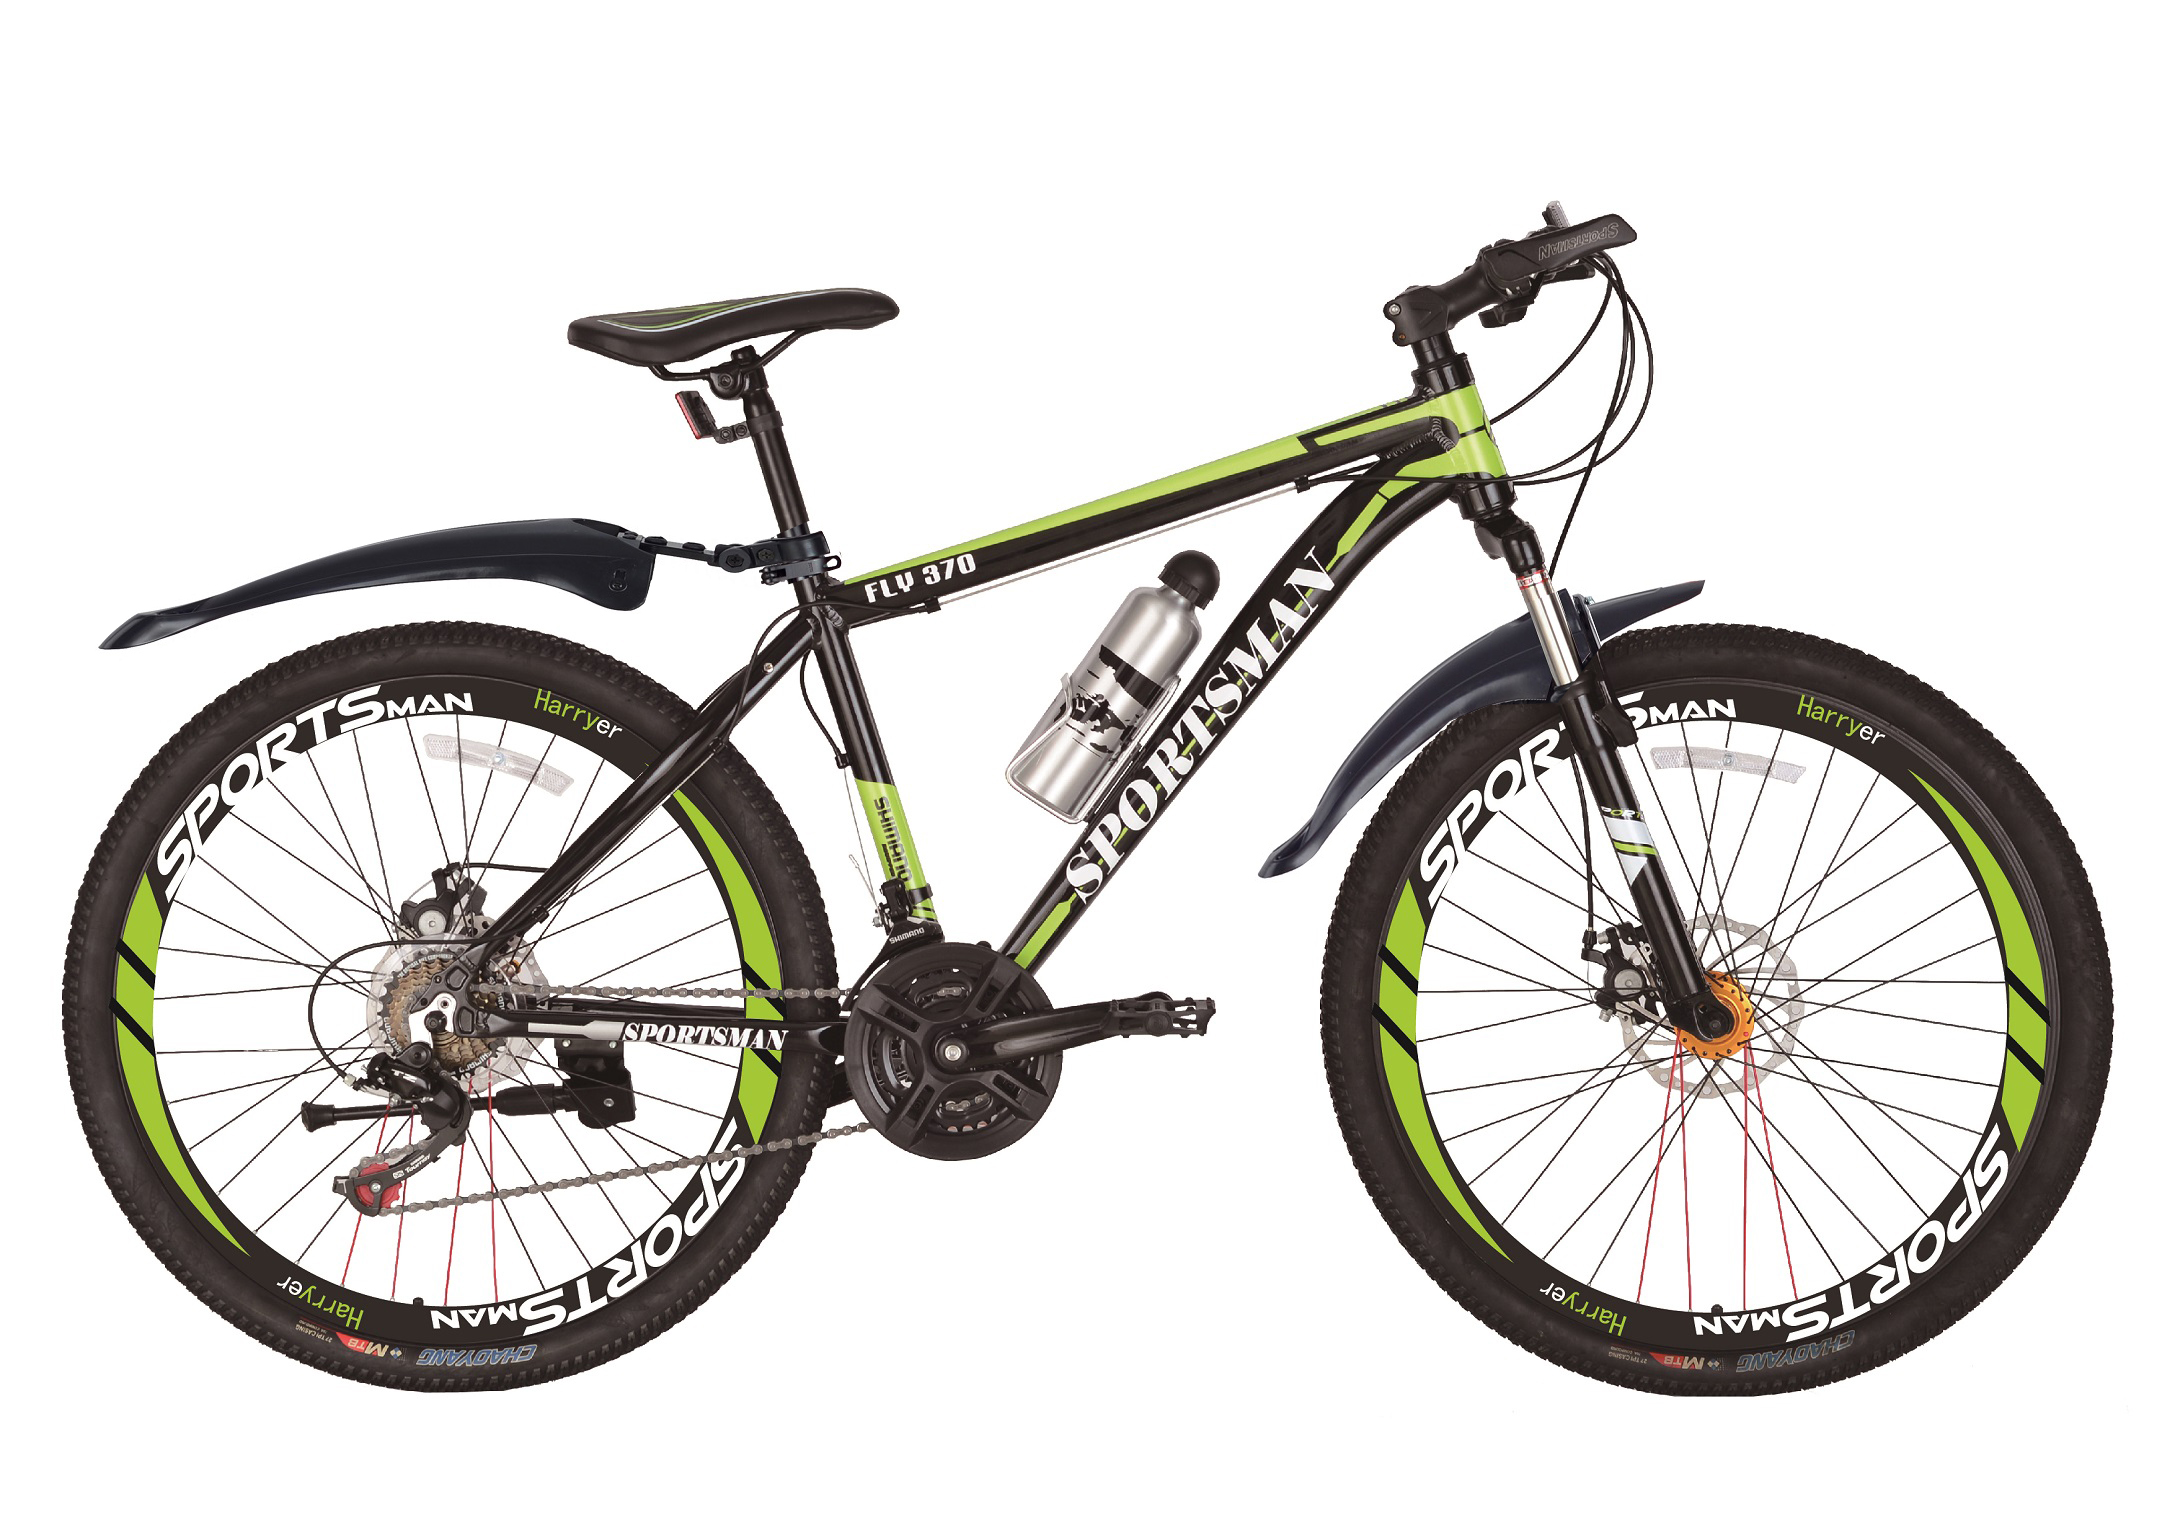 Collection Flying Mountain Bikes 21 Speeds Alloy Frame